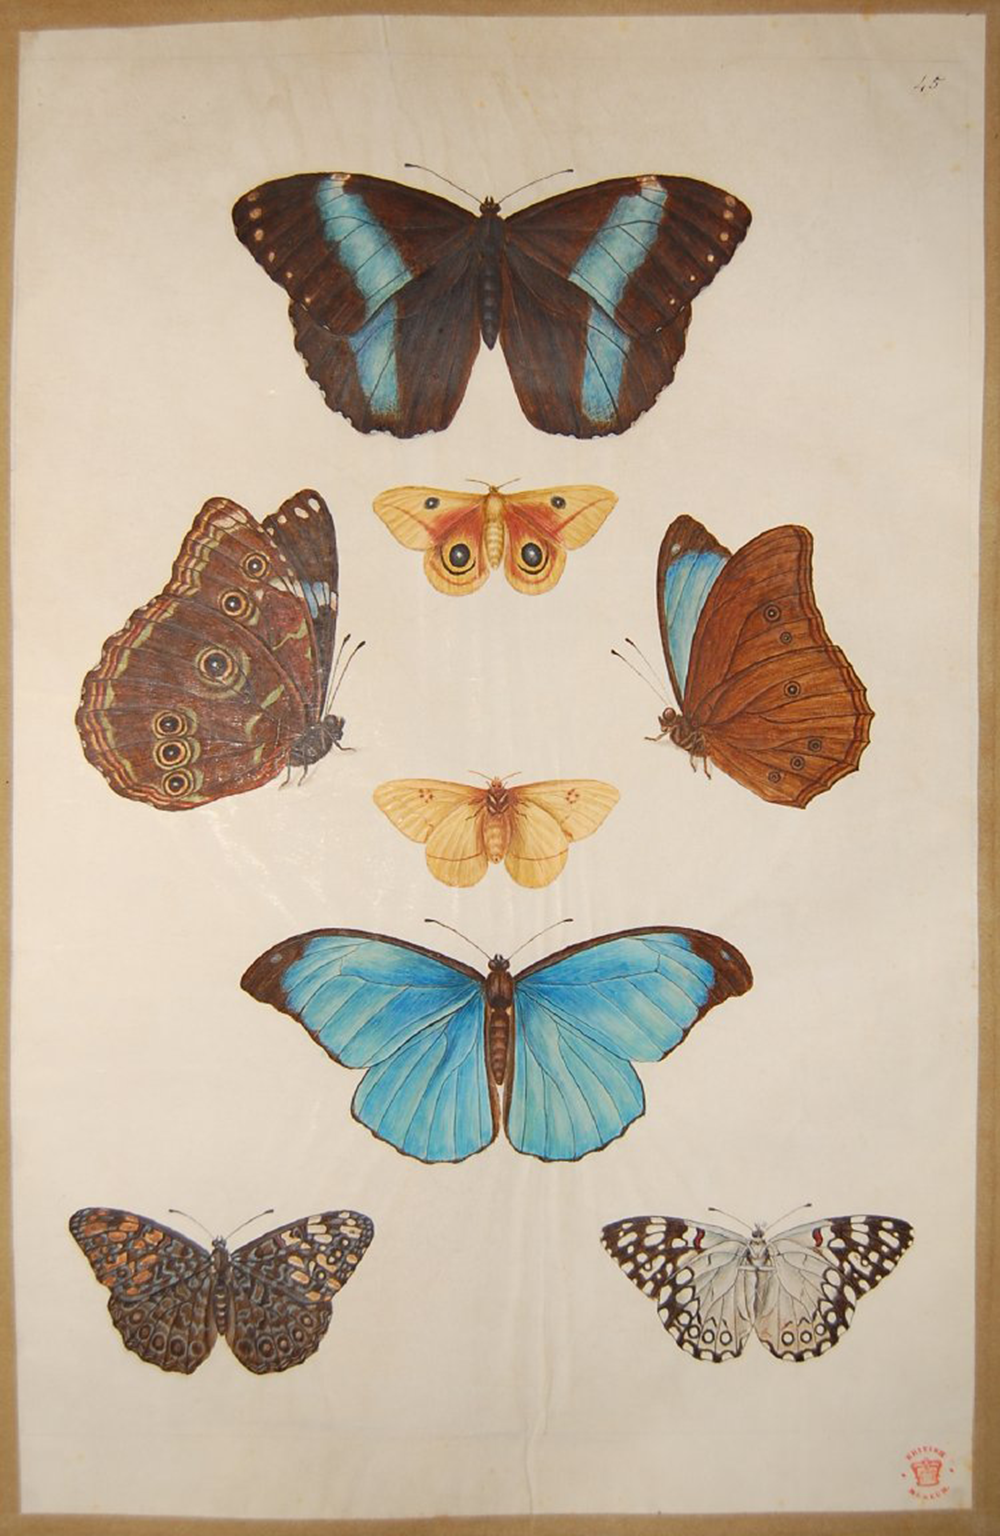 """Eight studies of four butterflies seen from above and below, from """"Roberts's Drawings of Plants, Birds, Shells &c., Vol. II,"""" by Nicolas Robert. © The Trustees of the British Museum."""